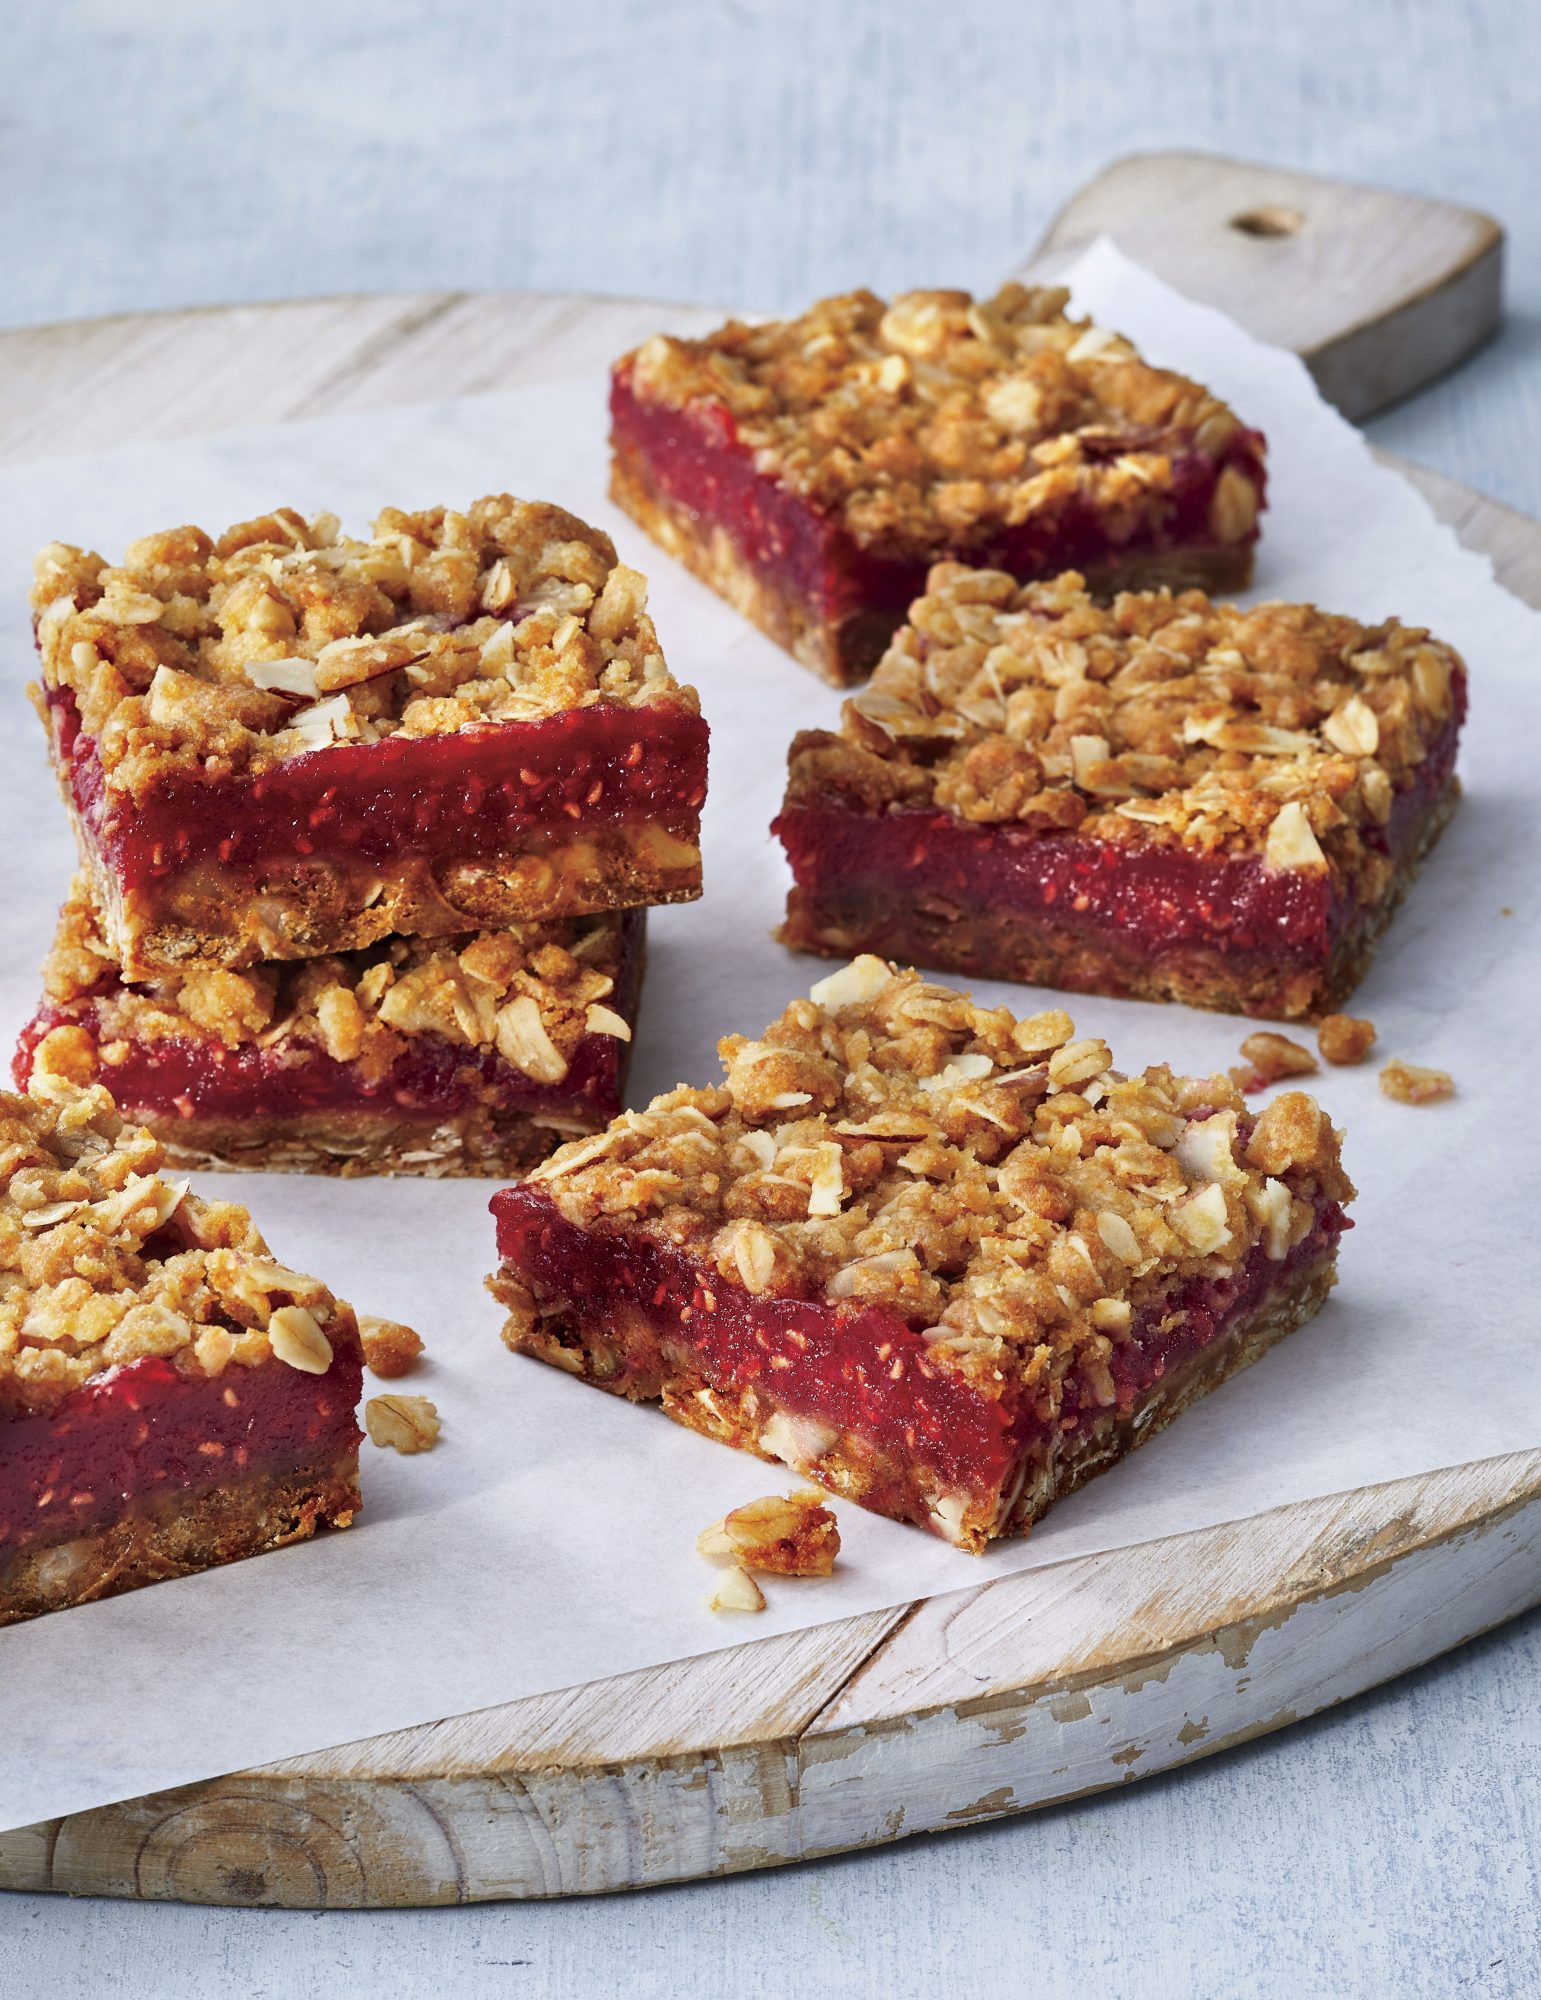 Raspberry-Almond Crumble Bars